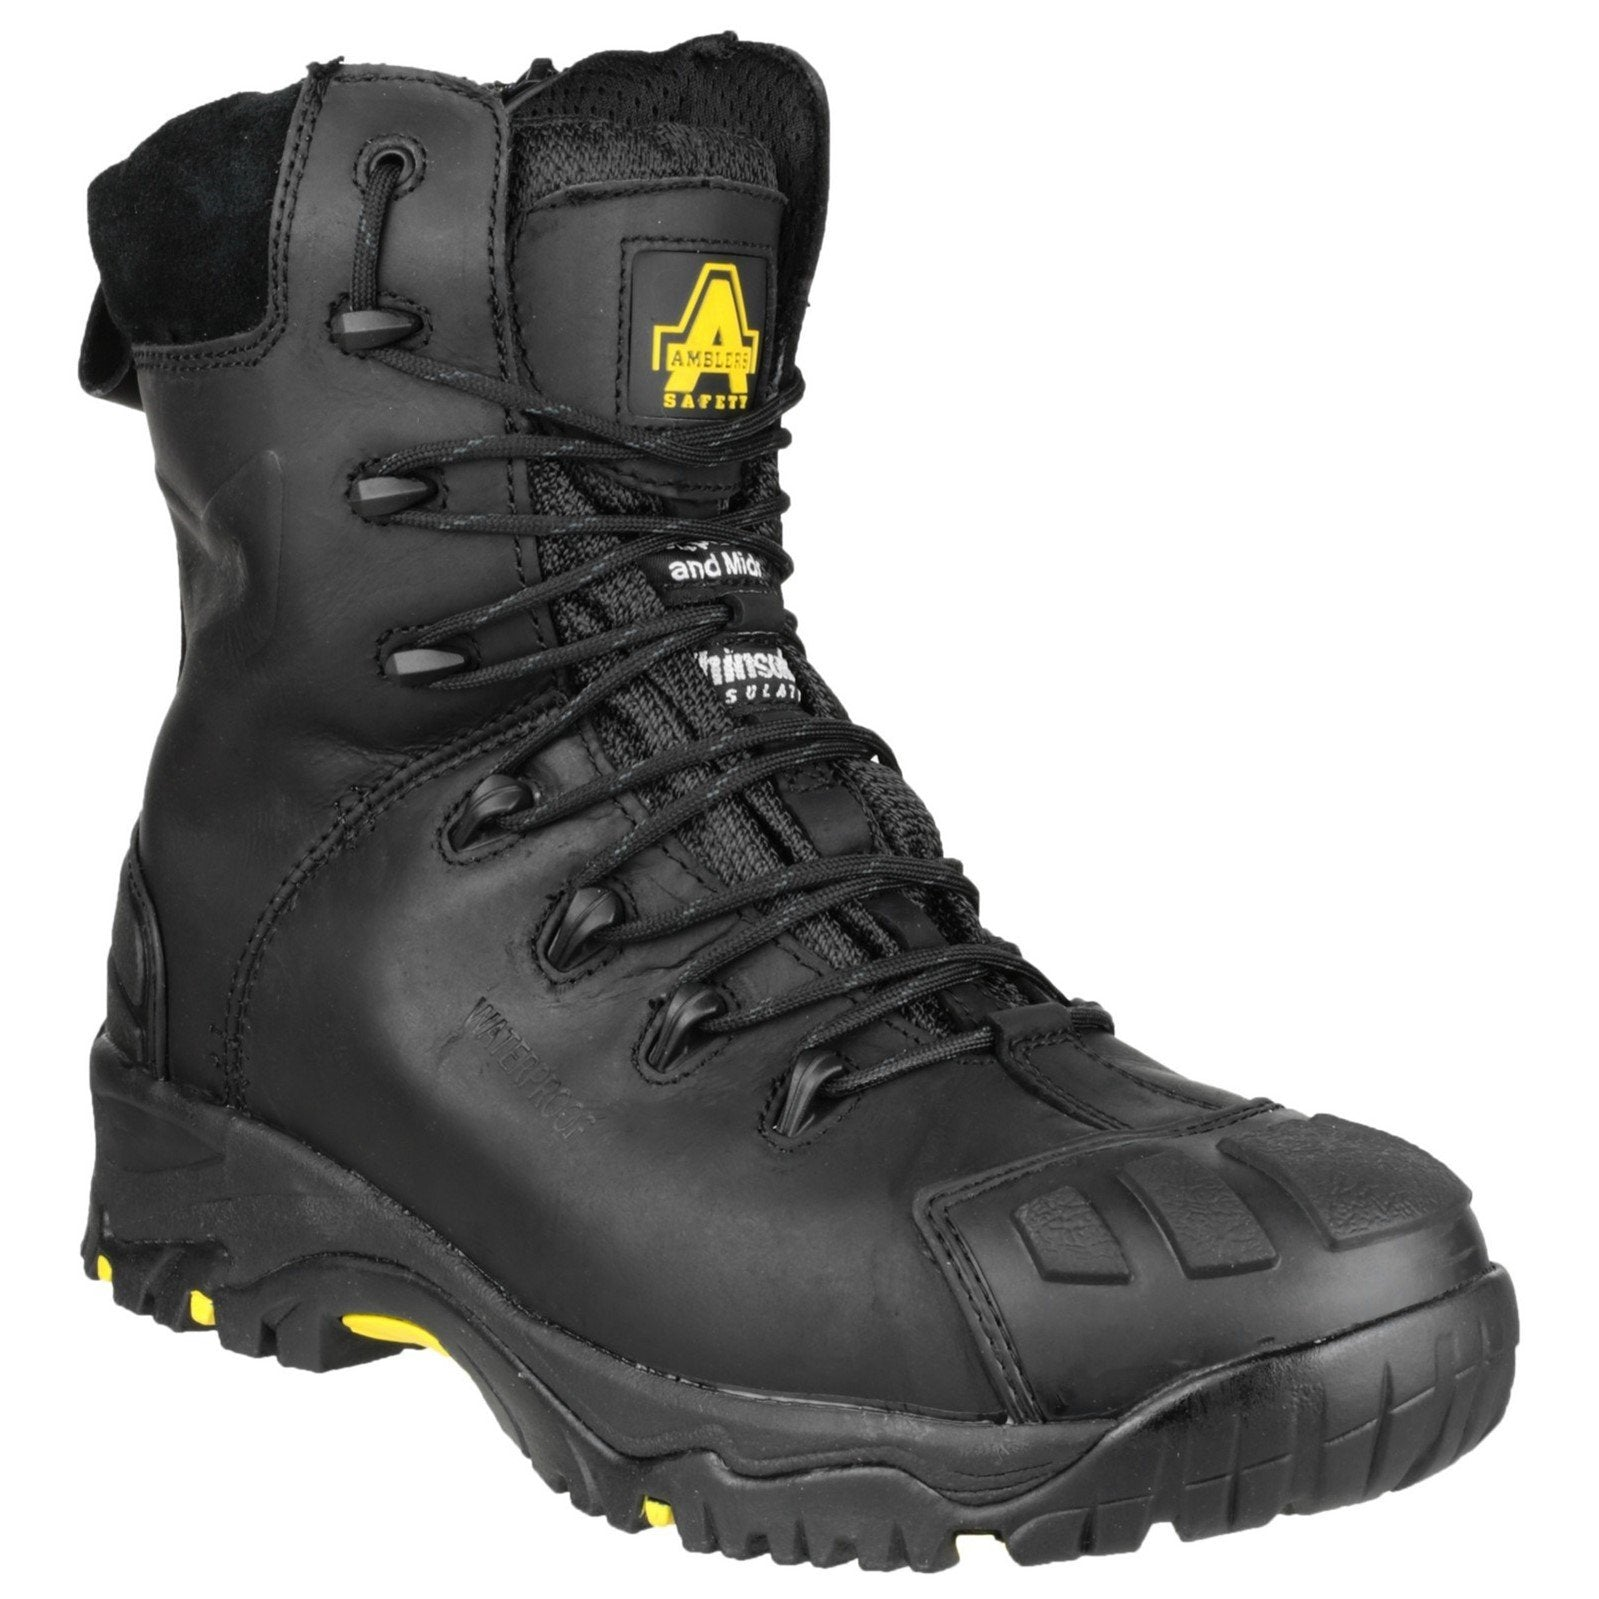 Amblers Safety Hi Leg Boots